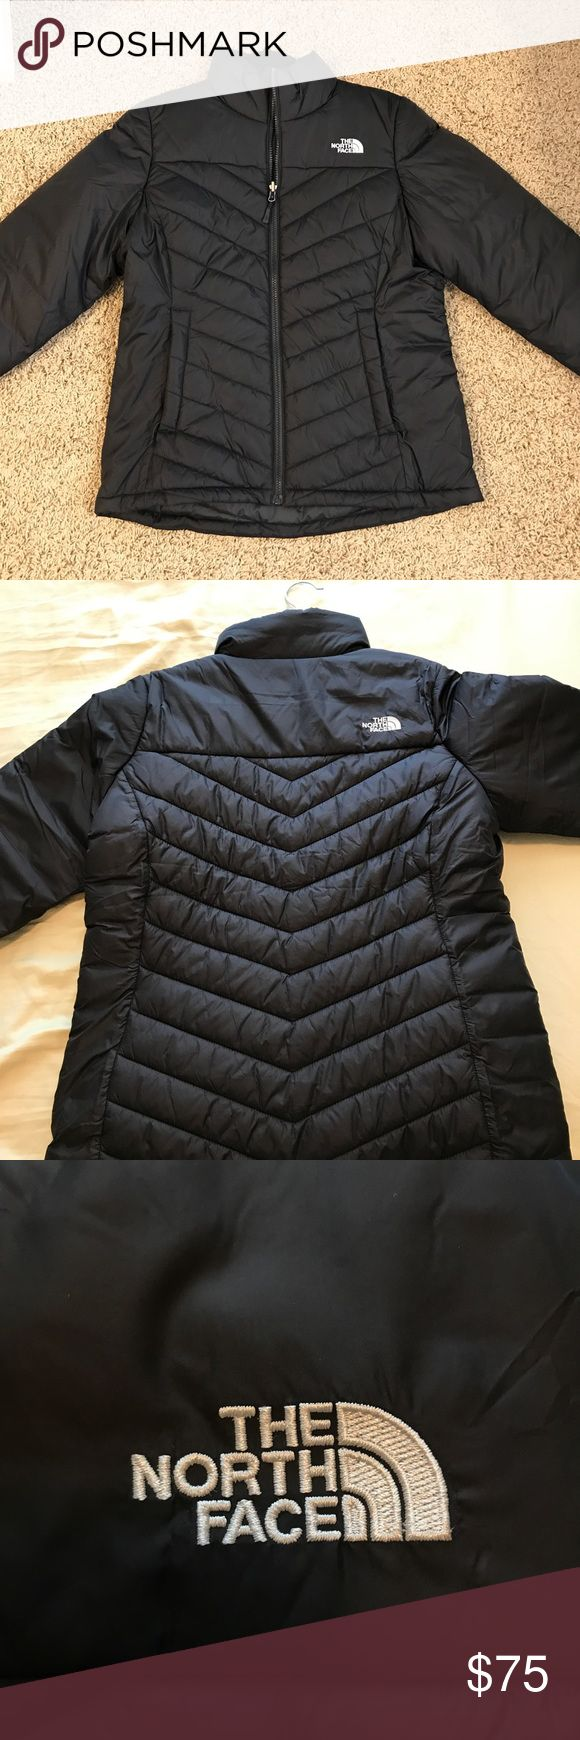 The North Face Nuptse Jacket The North Face women's jacket- black - size Medium. In excellent condition and had never been worn. Size Medium or would likely fit size 8/10. North Face Jackets & Coats Puffers